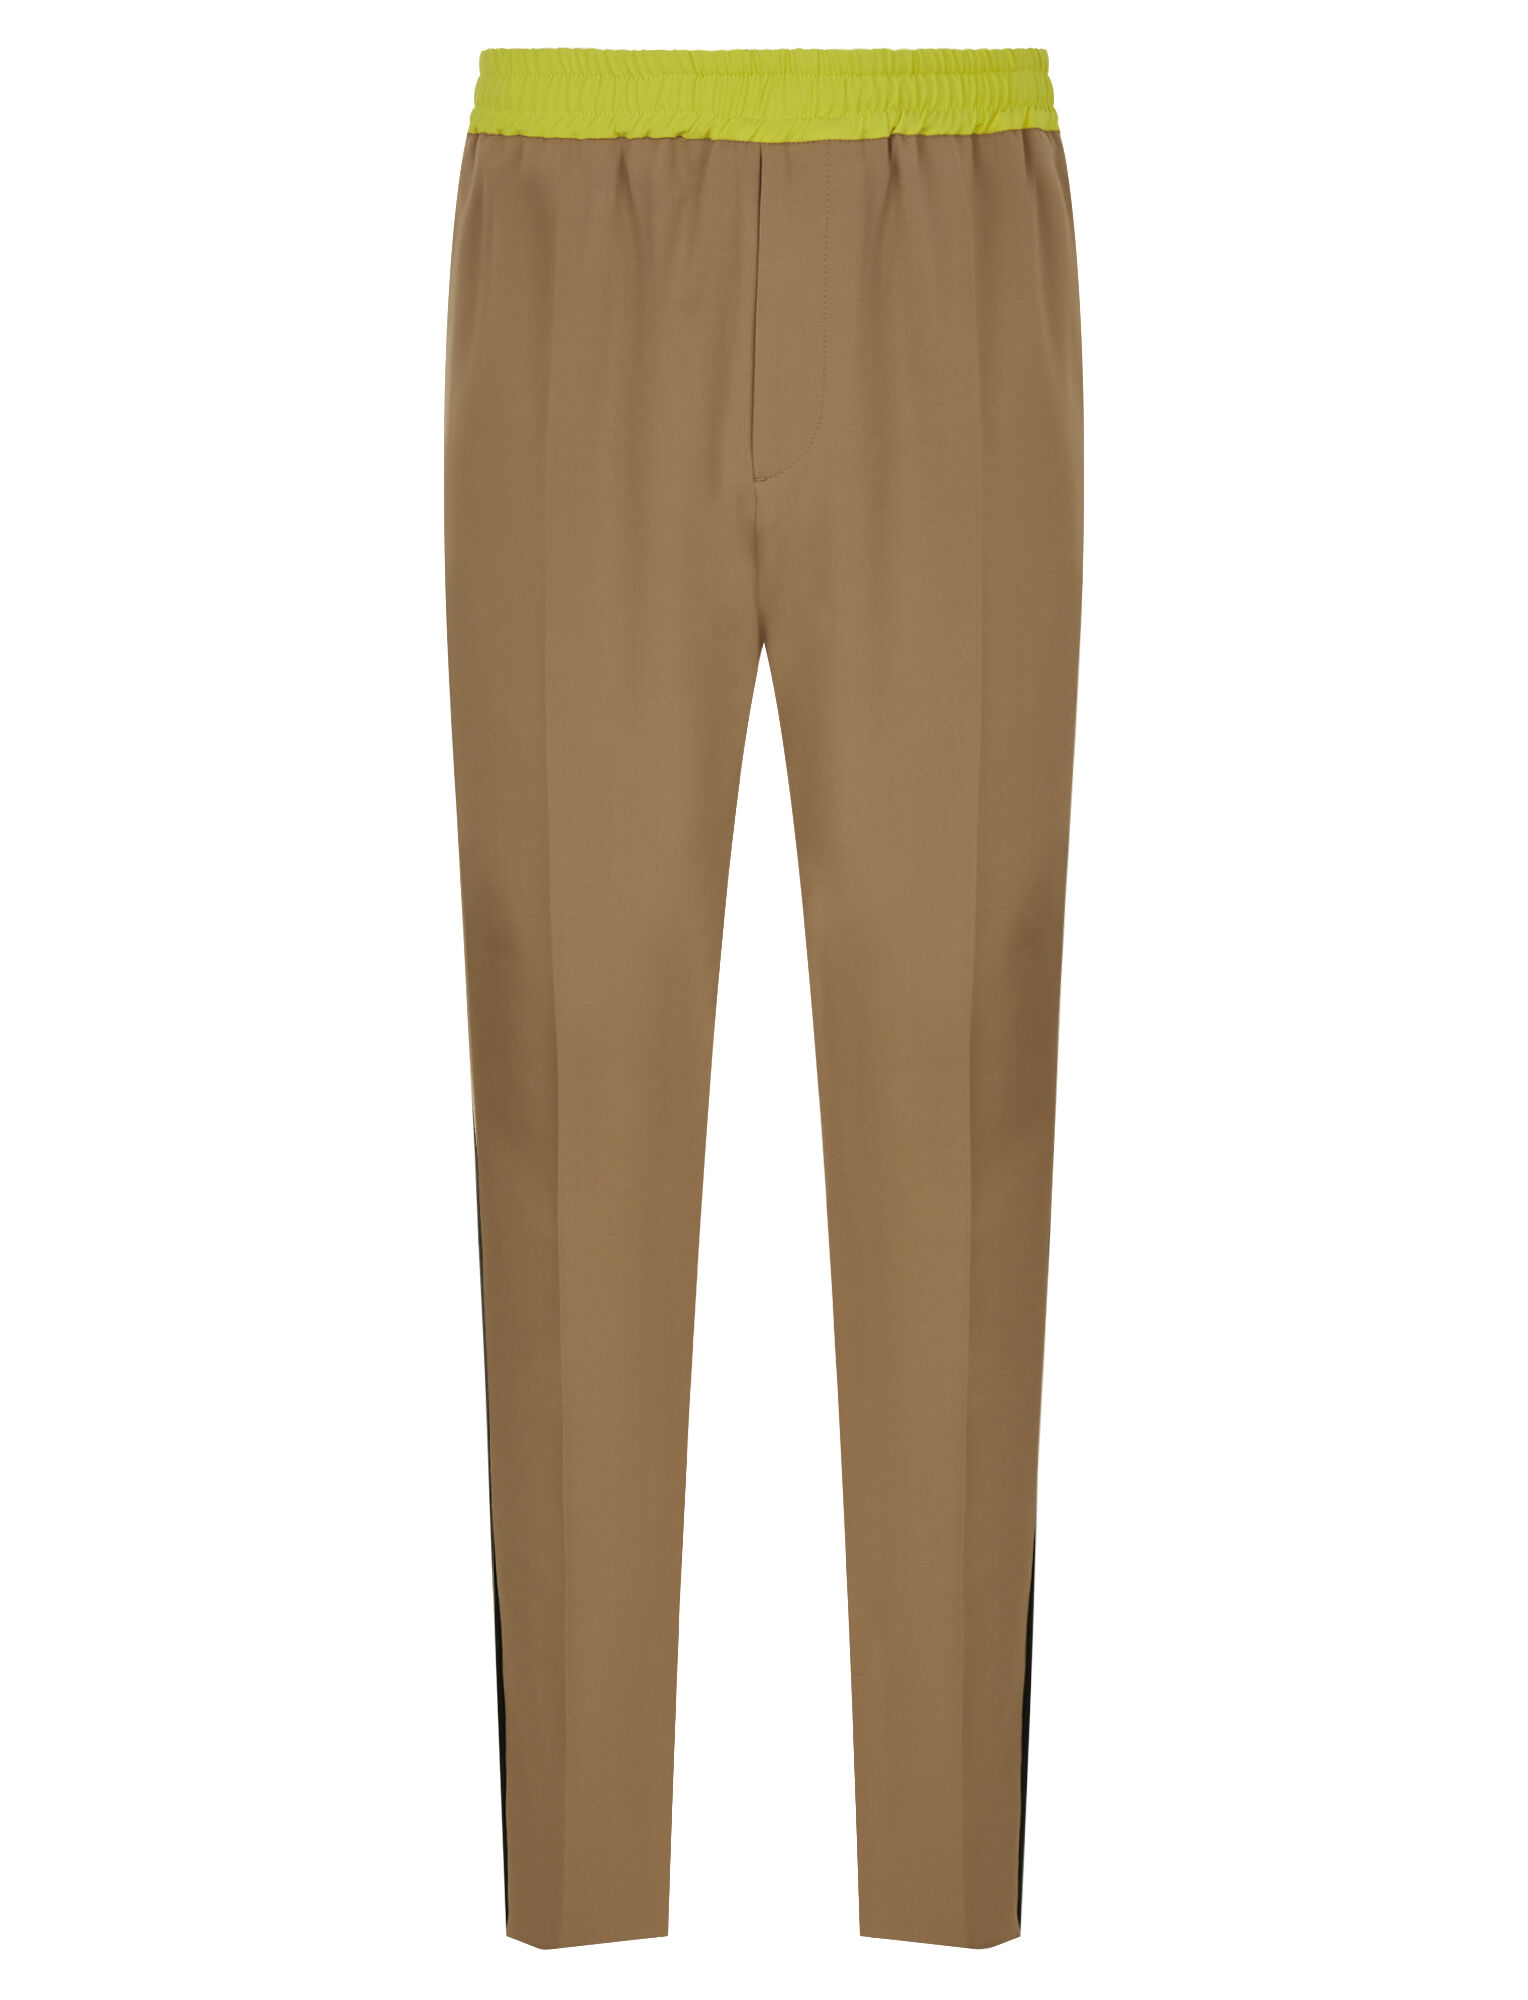 Joseph, Eza Techno Wool Stretch Tricolours Trousers, in CAMEL COMBO